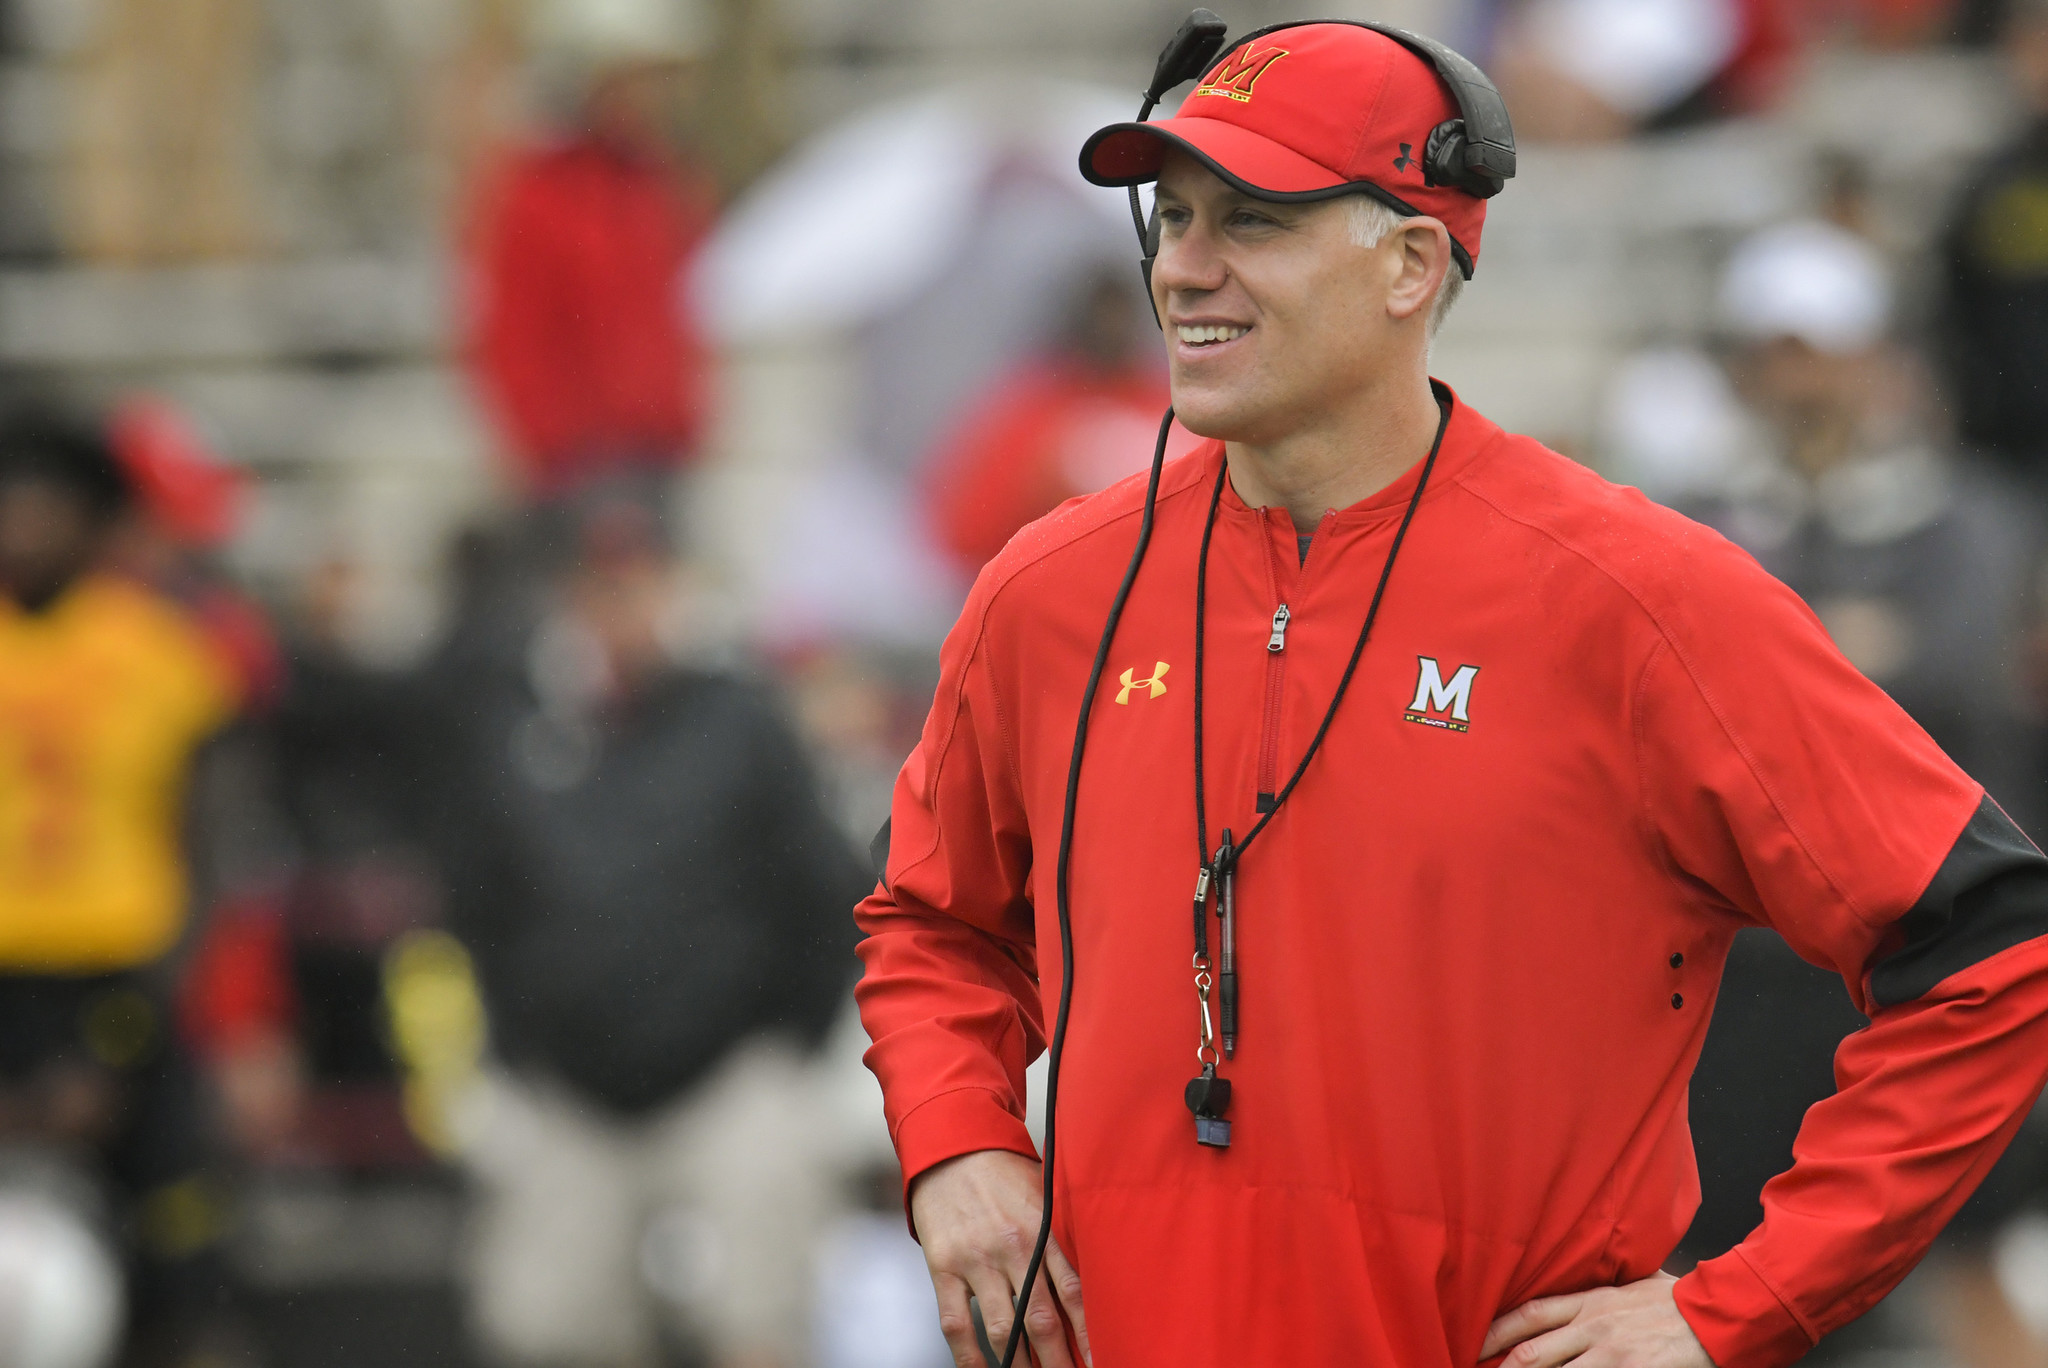 bal-terps-coach-dj-durkin-on-incoming-re